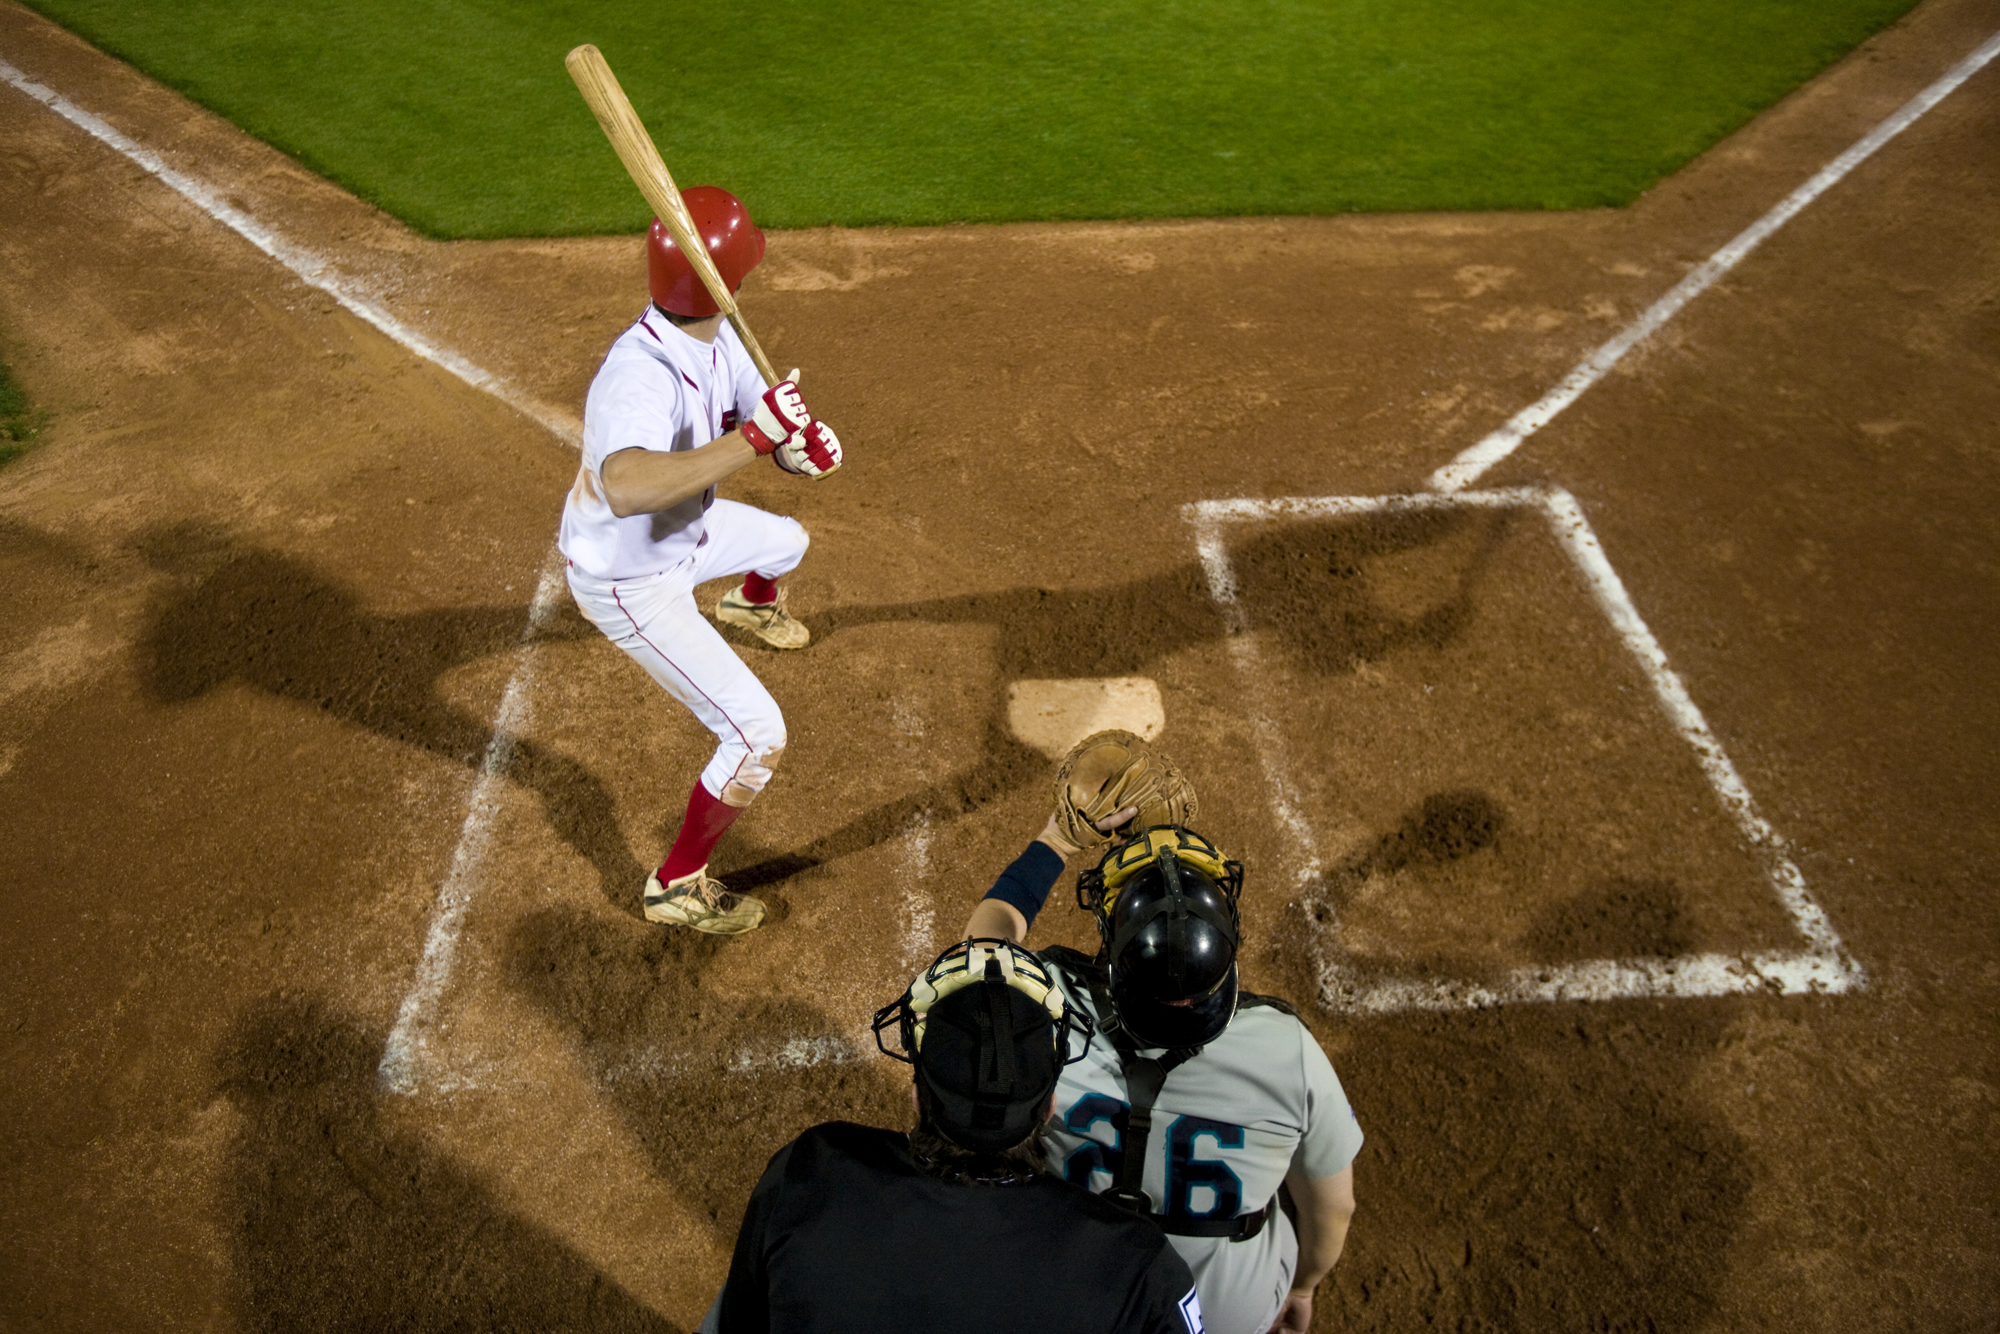 Two Baseball players in position for a pitch on a baseball field